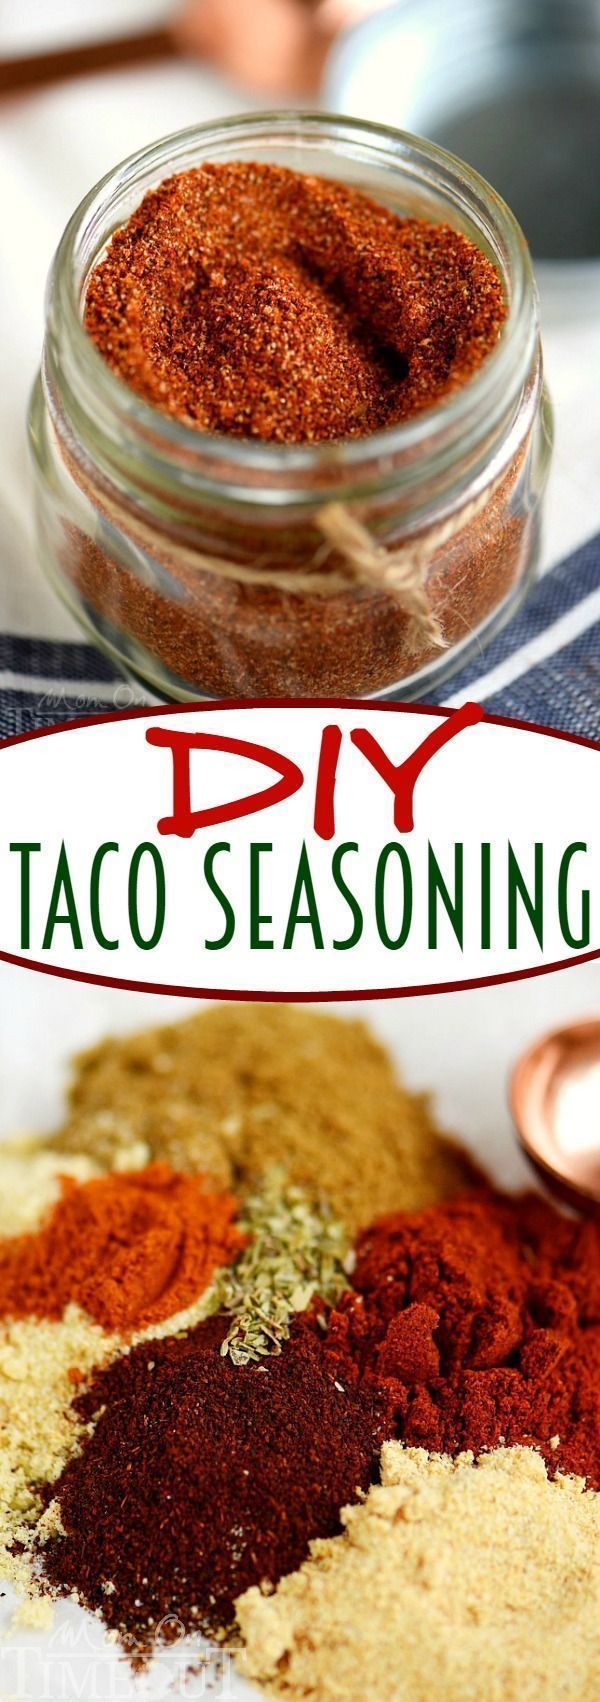 DIY Taco Seasoning #diytacoseasoning The recipe everyone needs in their dinner arsenal - DIY Taco Seasoning! Makes a great gift too! | eBay #diytacoseasoning DIY Taco Seasoning #diytacoseasoning The recipe everyone needs in their dinner arsenal - DIY Taco Seasoning! Makes a great gift too! | eBay #diytacoseasoning DIY Taco Seasoning #diytacoseasoning The recipe everyone needs in their dinner arsenal - DIY Taco Seasoning! Makes a great gift too! | eBay #diytacoseasoning DIY Taco Seasoning #diytac #diytacoseasoning